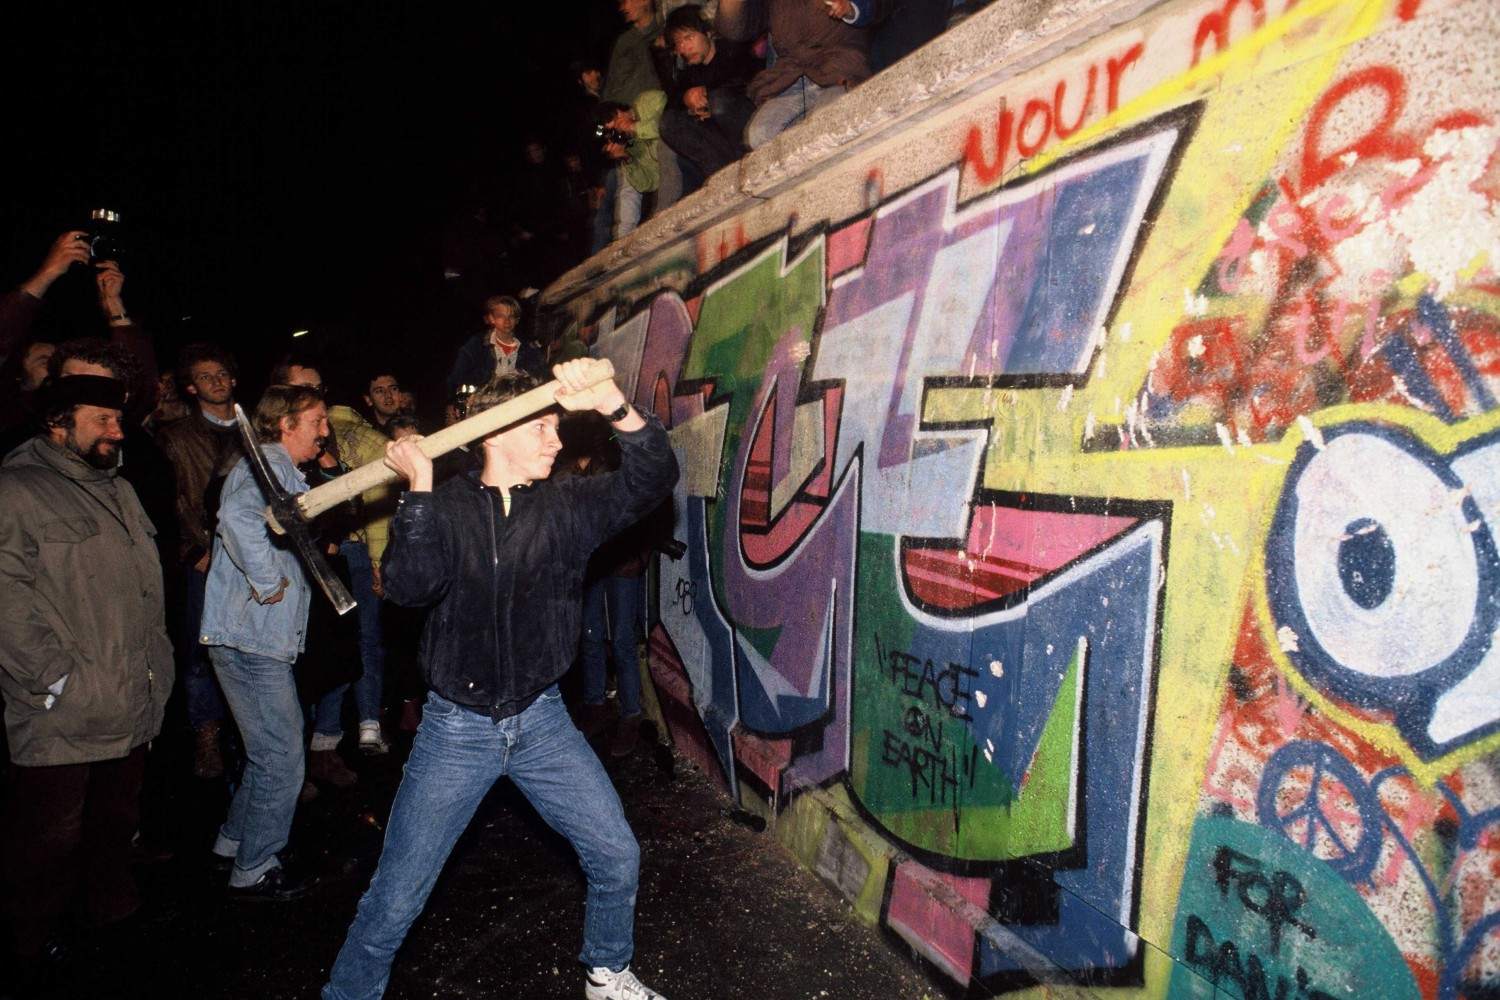 Rušenje Berlinskog zida krampom u noći 9. novembra 1989. (Foto: Robert Wallis/Corbis via Getty Images)